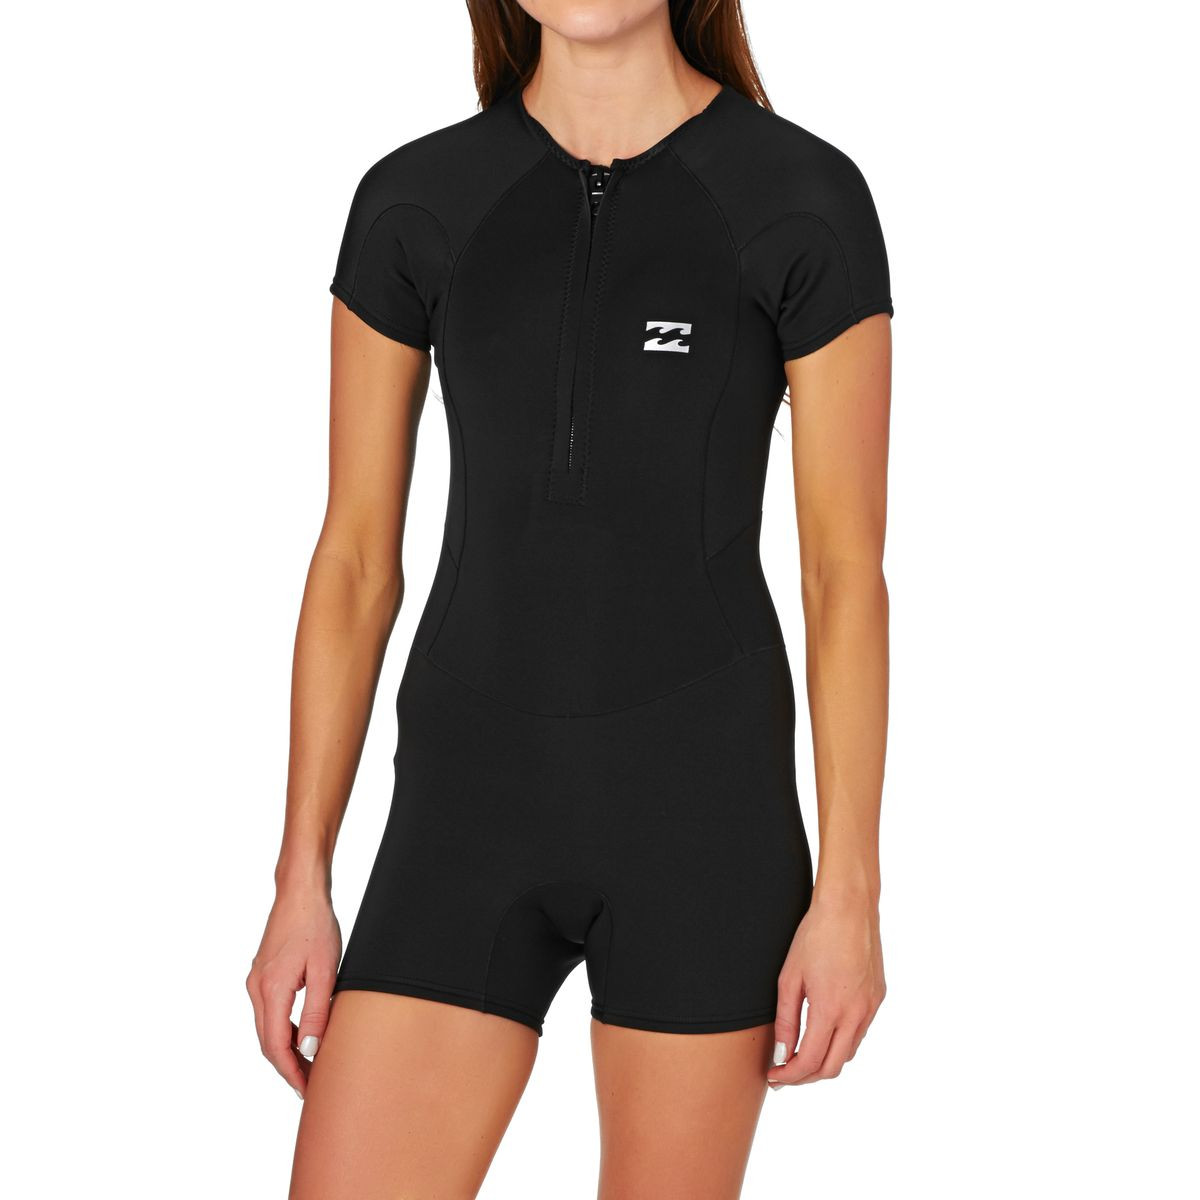 Billabong Womens Synergy 1mm 2017 Front Zip Short Sleeve Shorty Wetsuit - Black